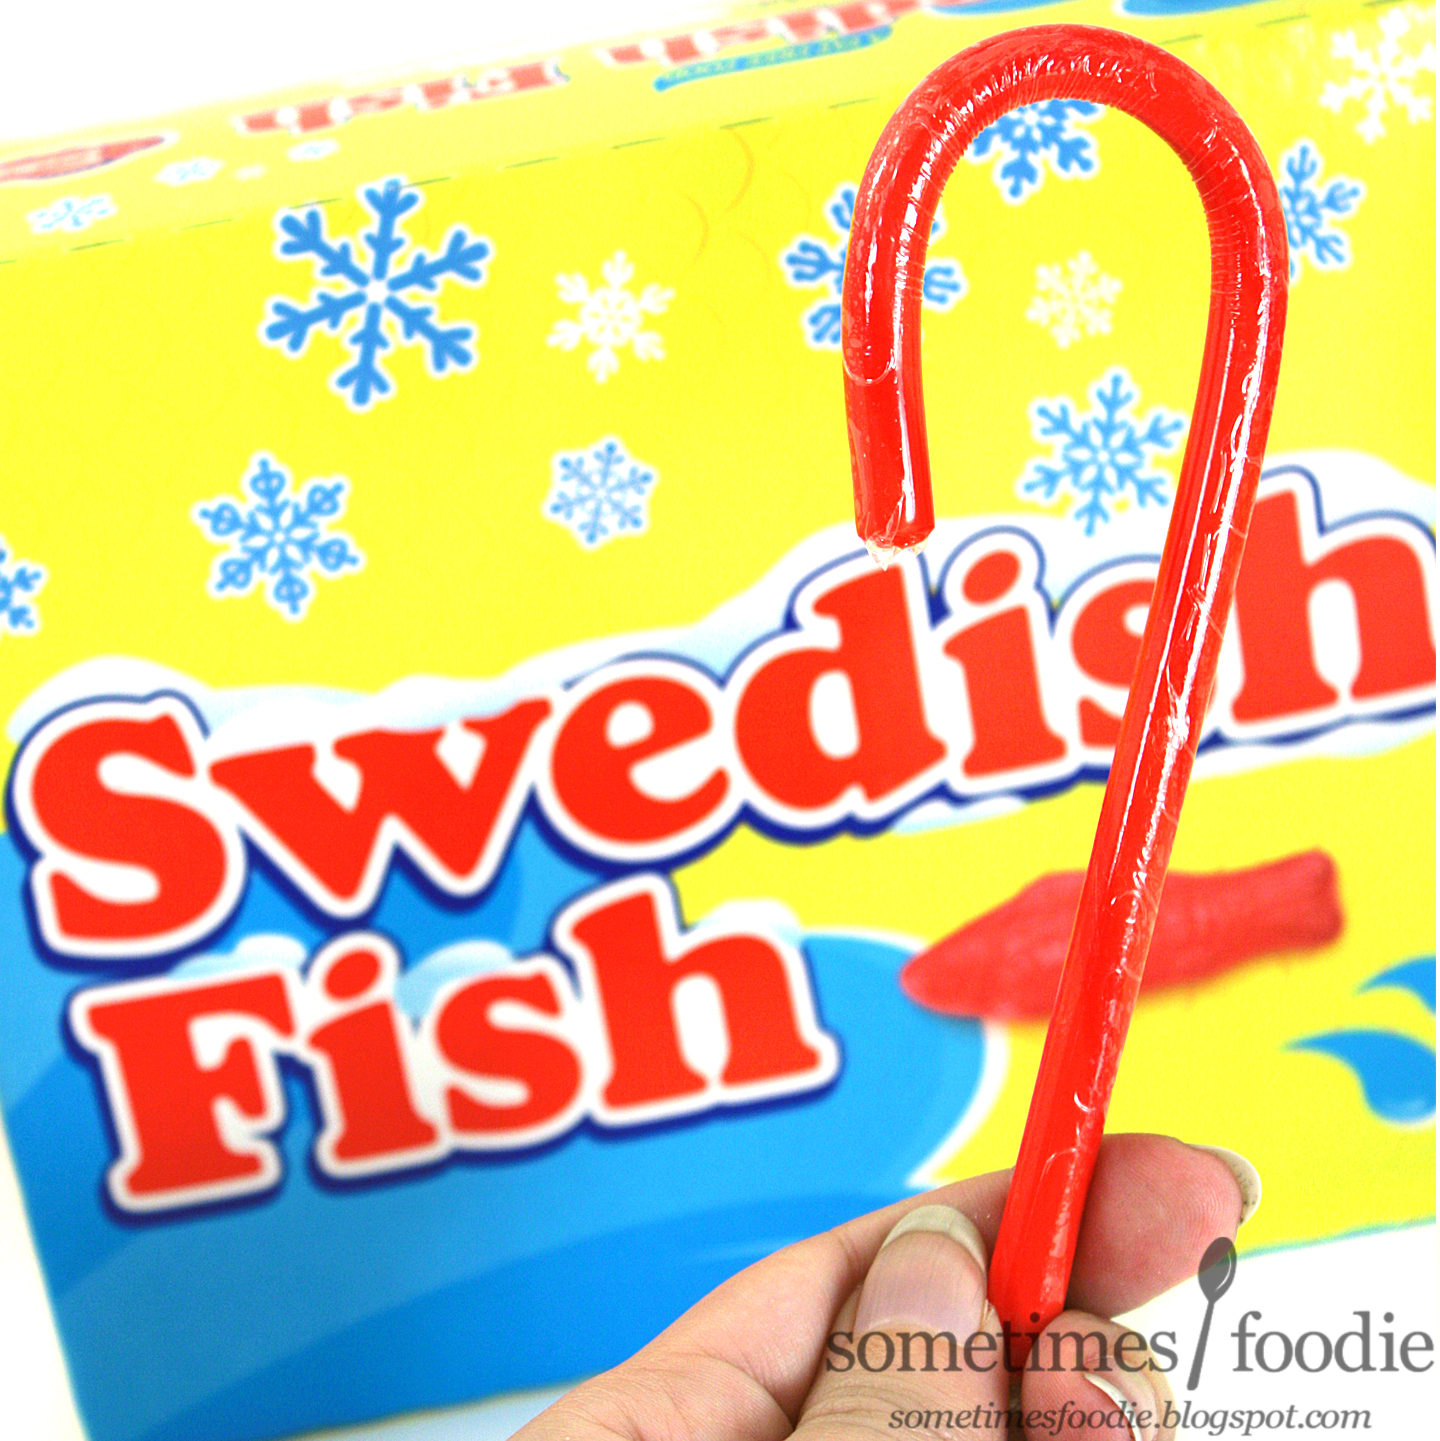 Sometimes foodie swedish fish candy canes wegman 39 s for Who makes swedish fish